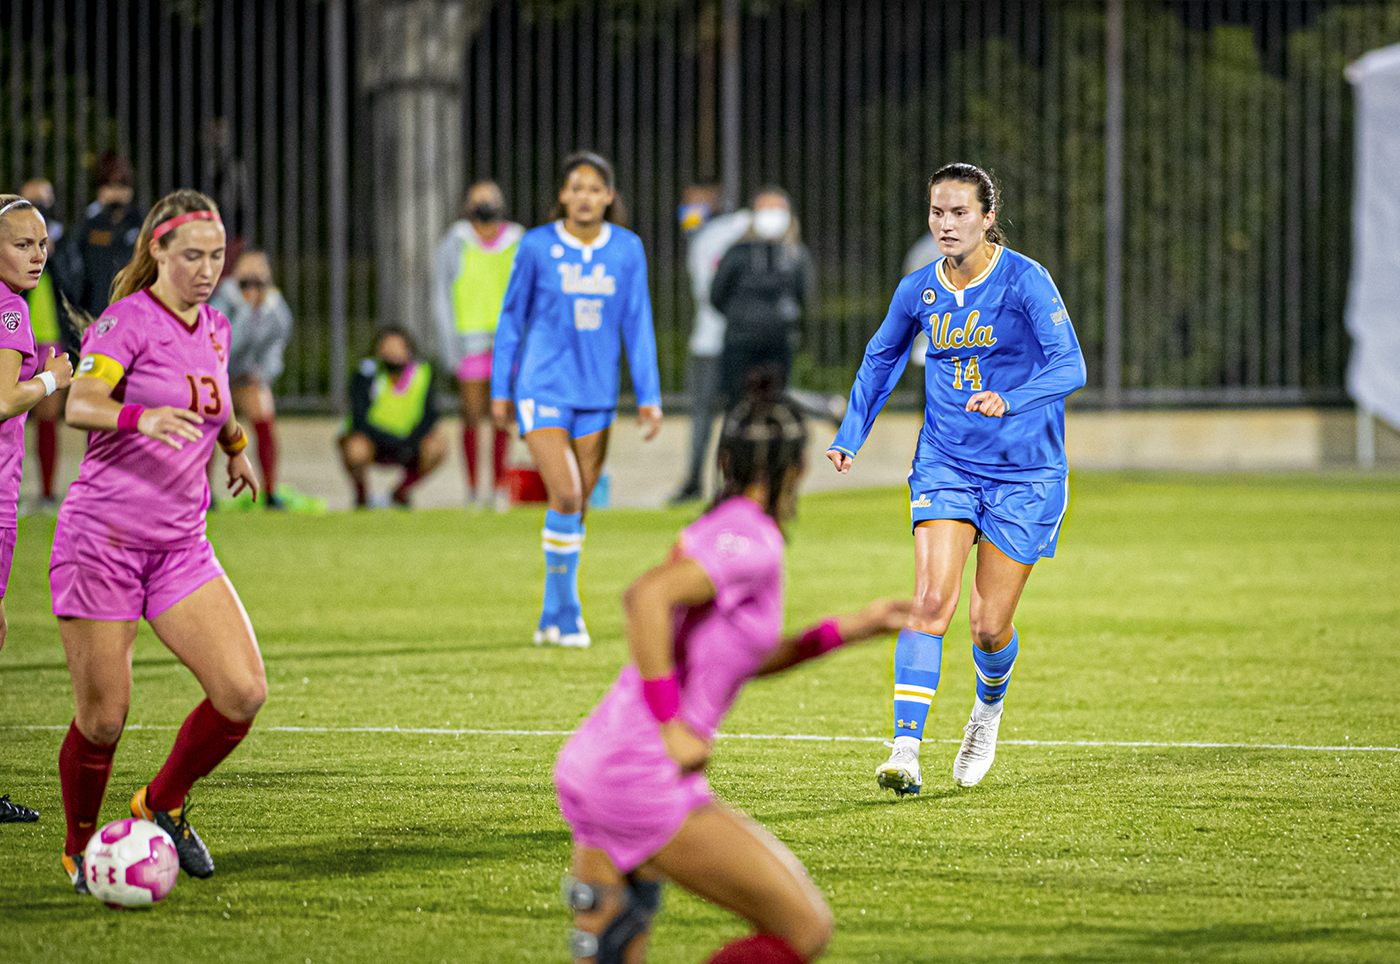 UCLA women's soccer prepares to face USC in final conference matchup of season - Daily Bruin